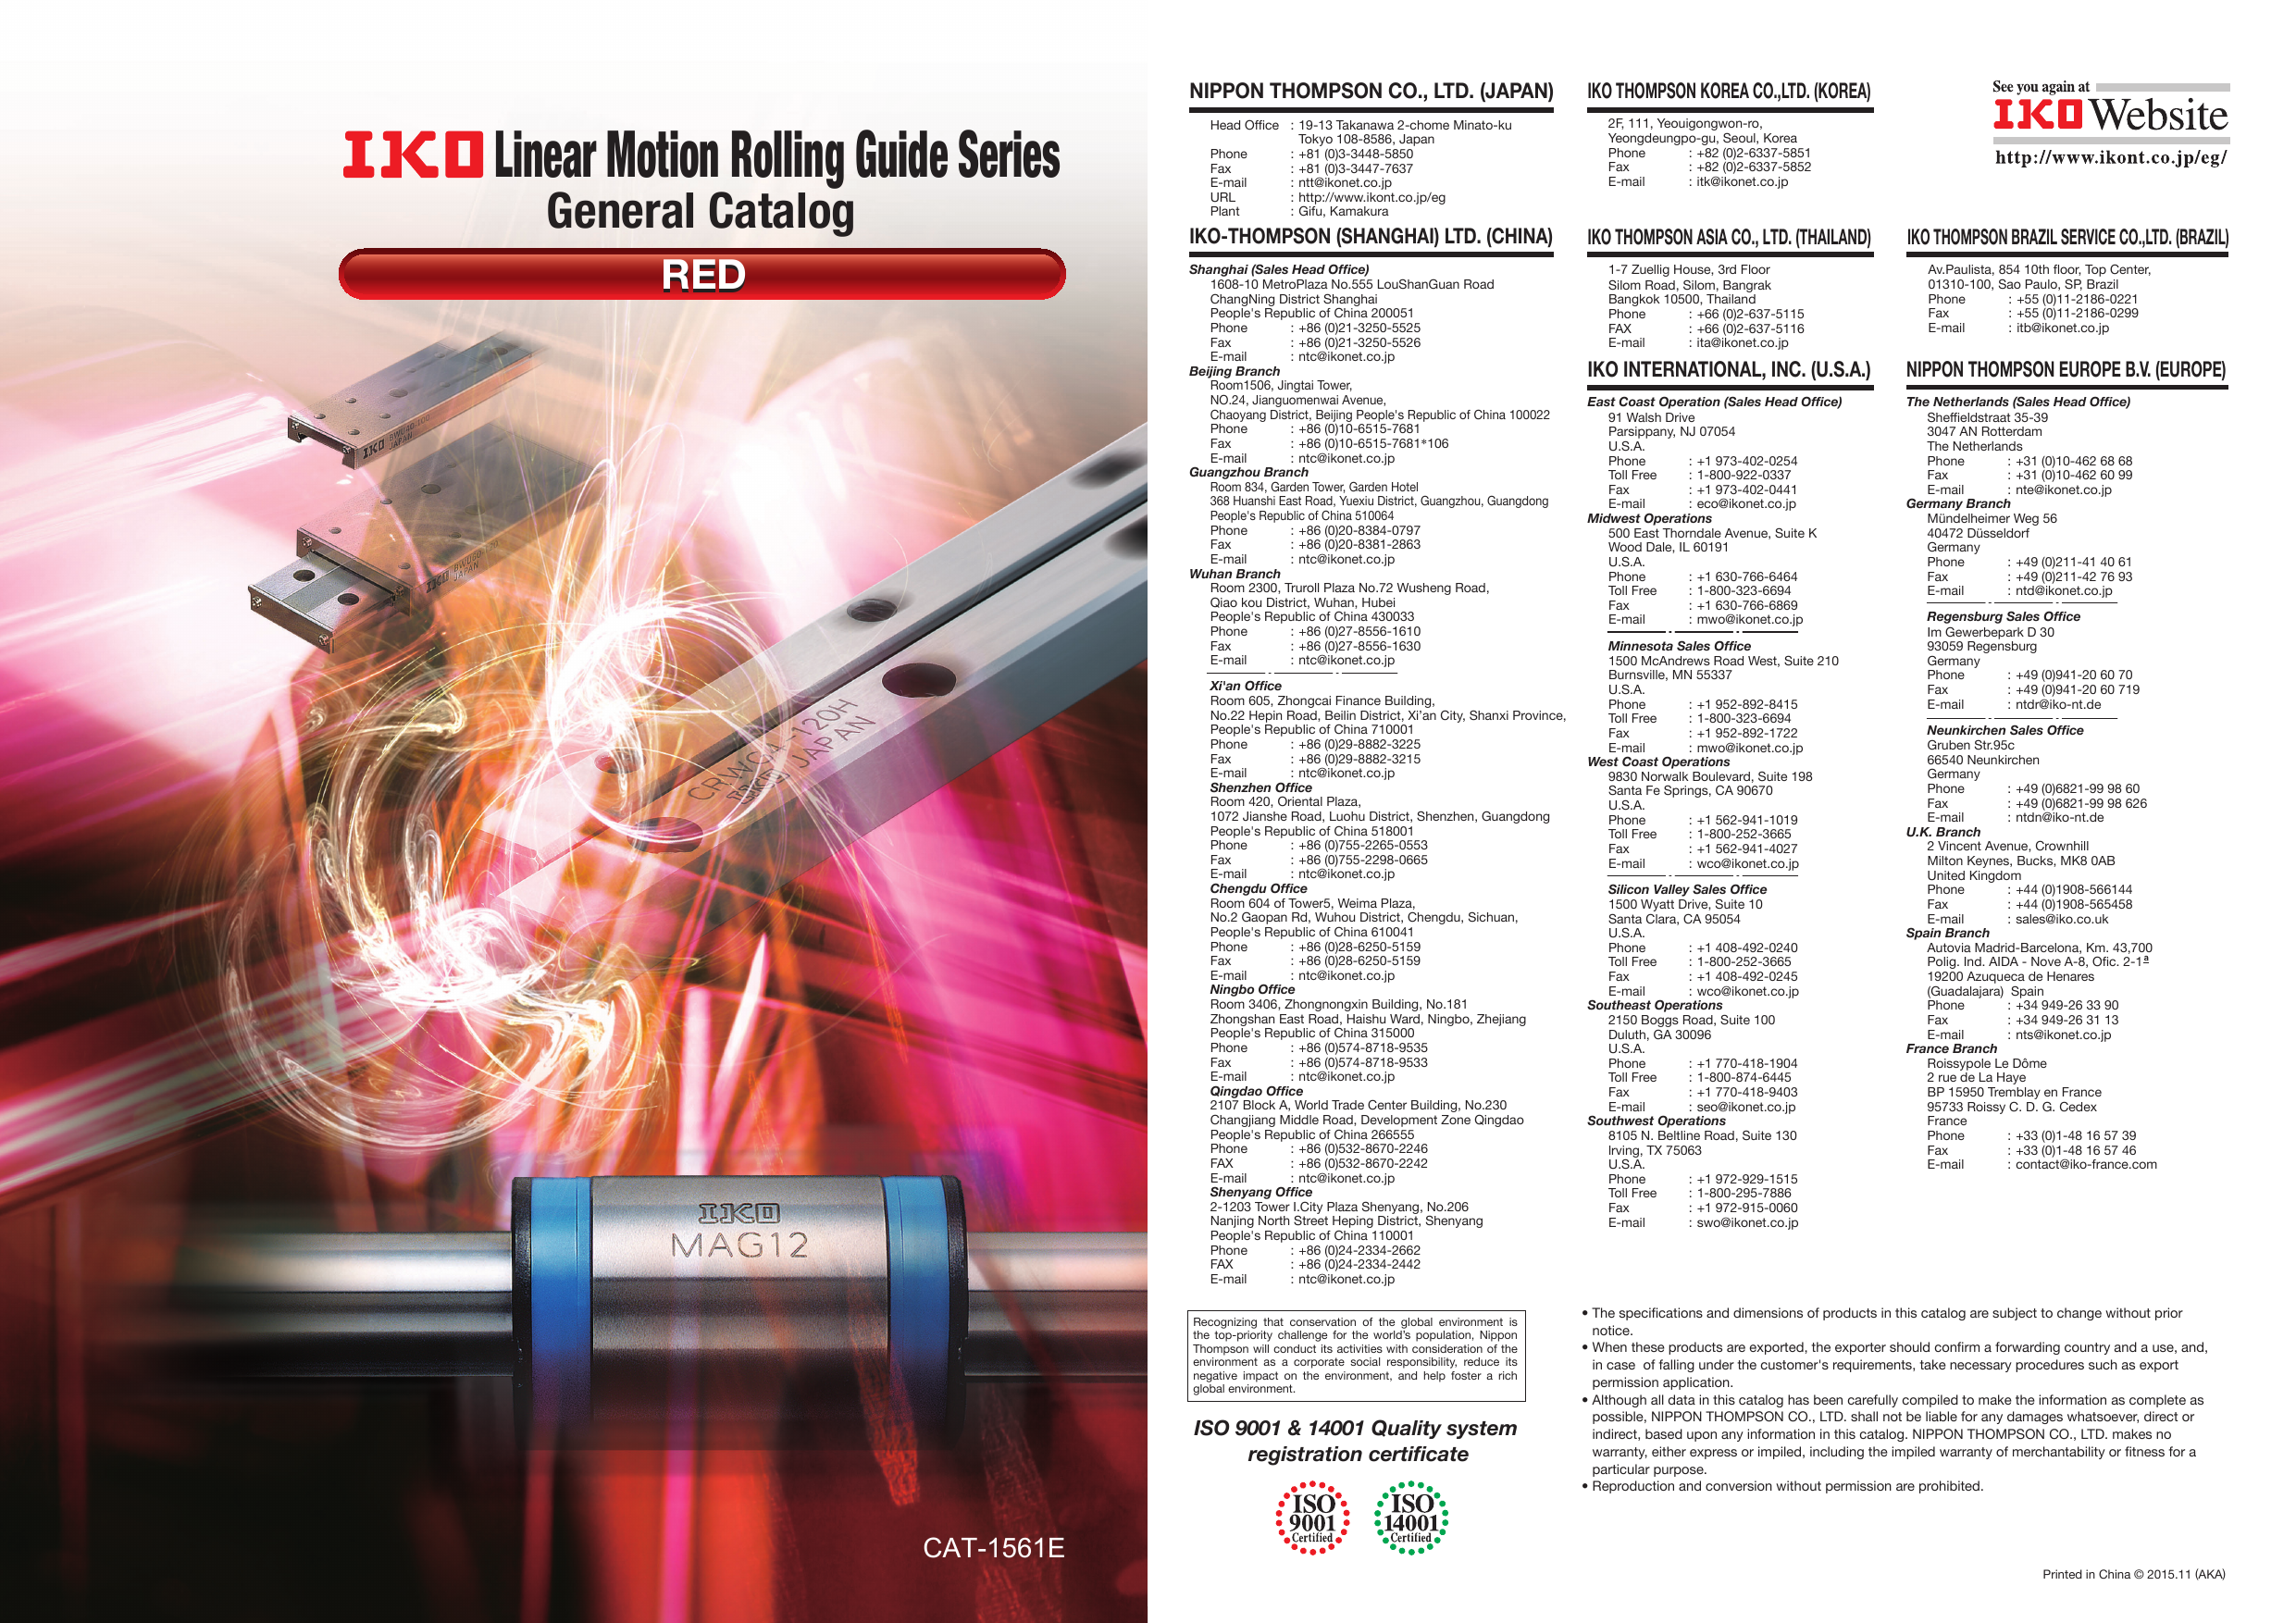 IKO Linear Motion Rolling Guide Series General Catalog RED